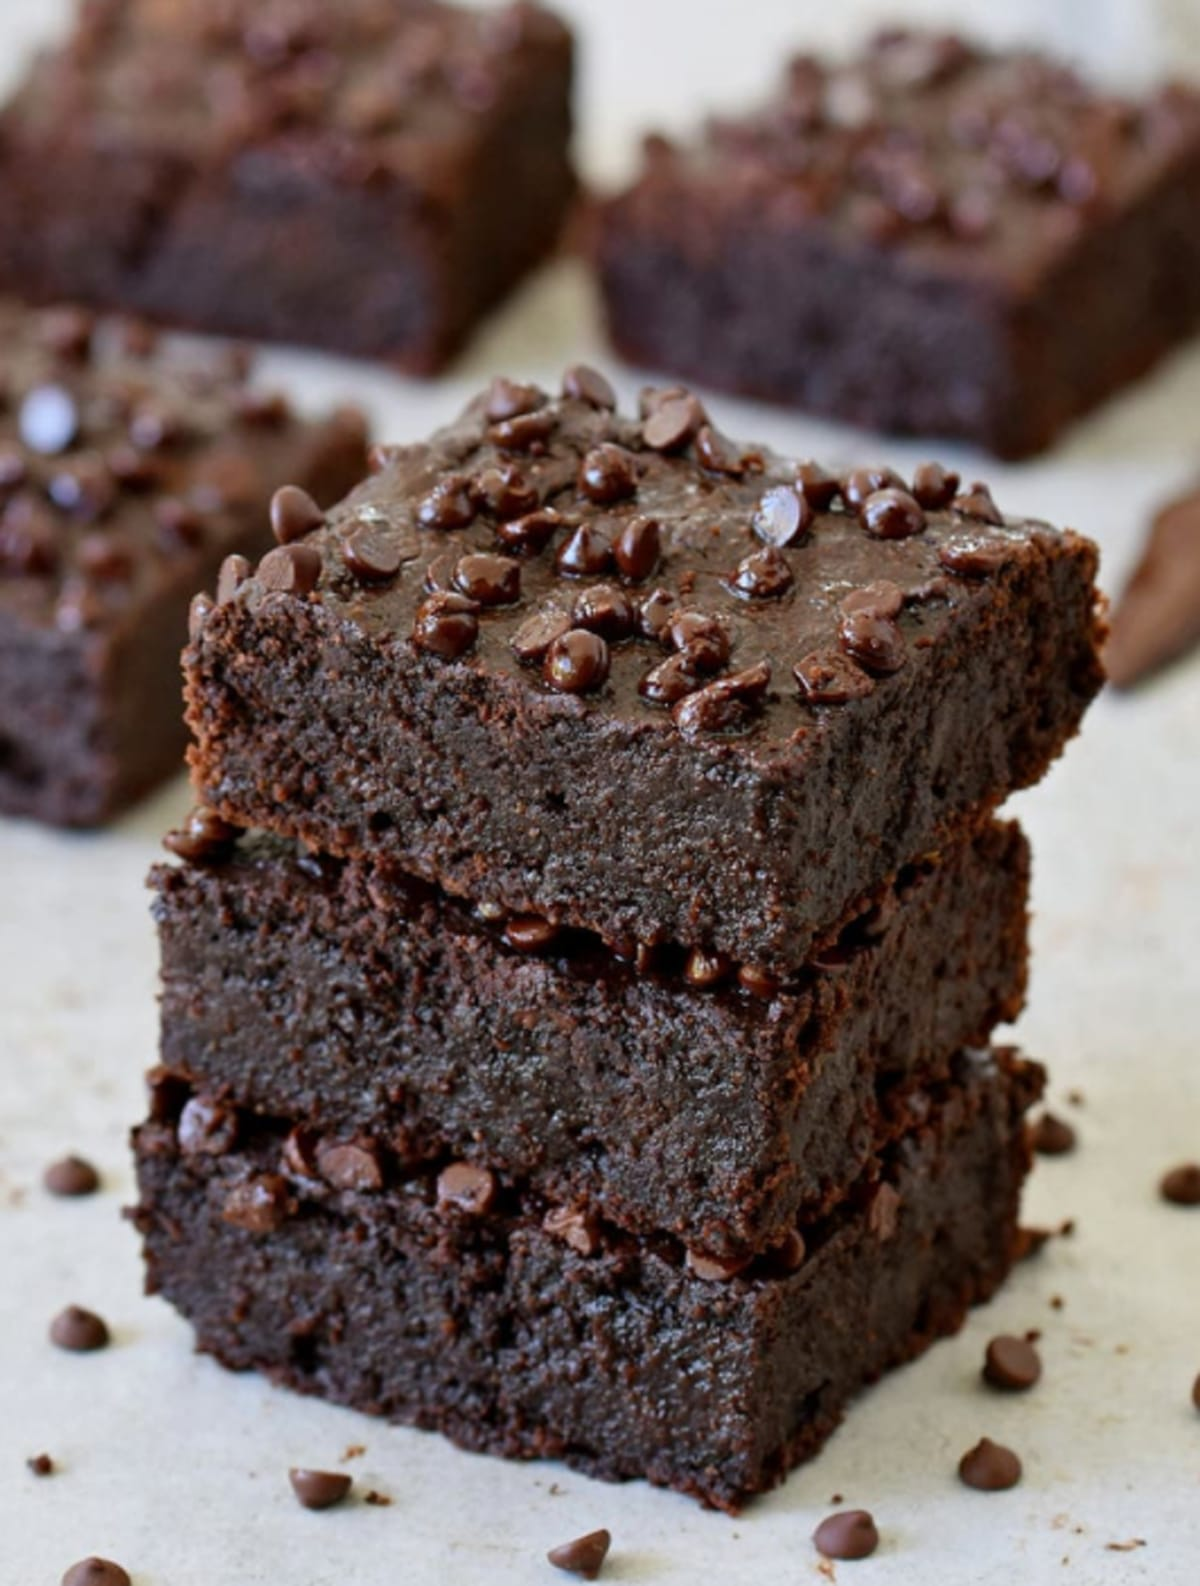 Zucchini brownies on a plate topped with chocolate chips.